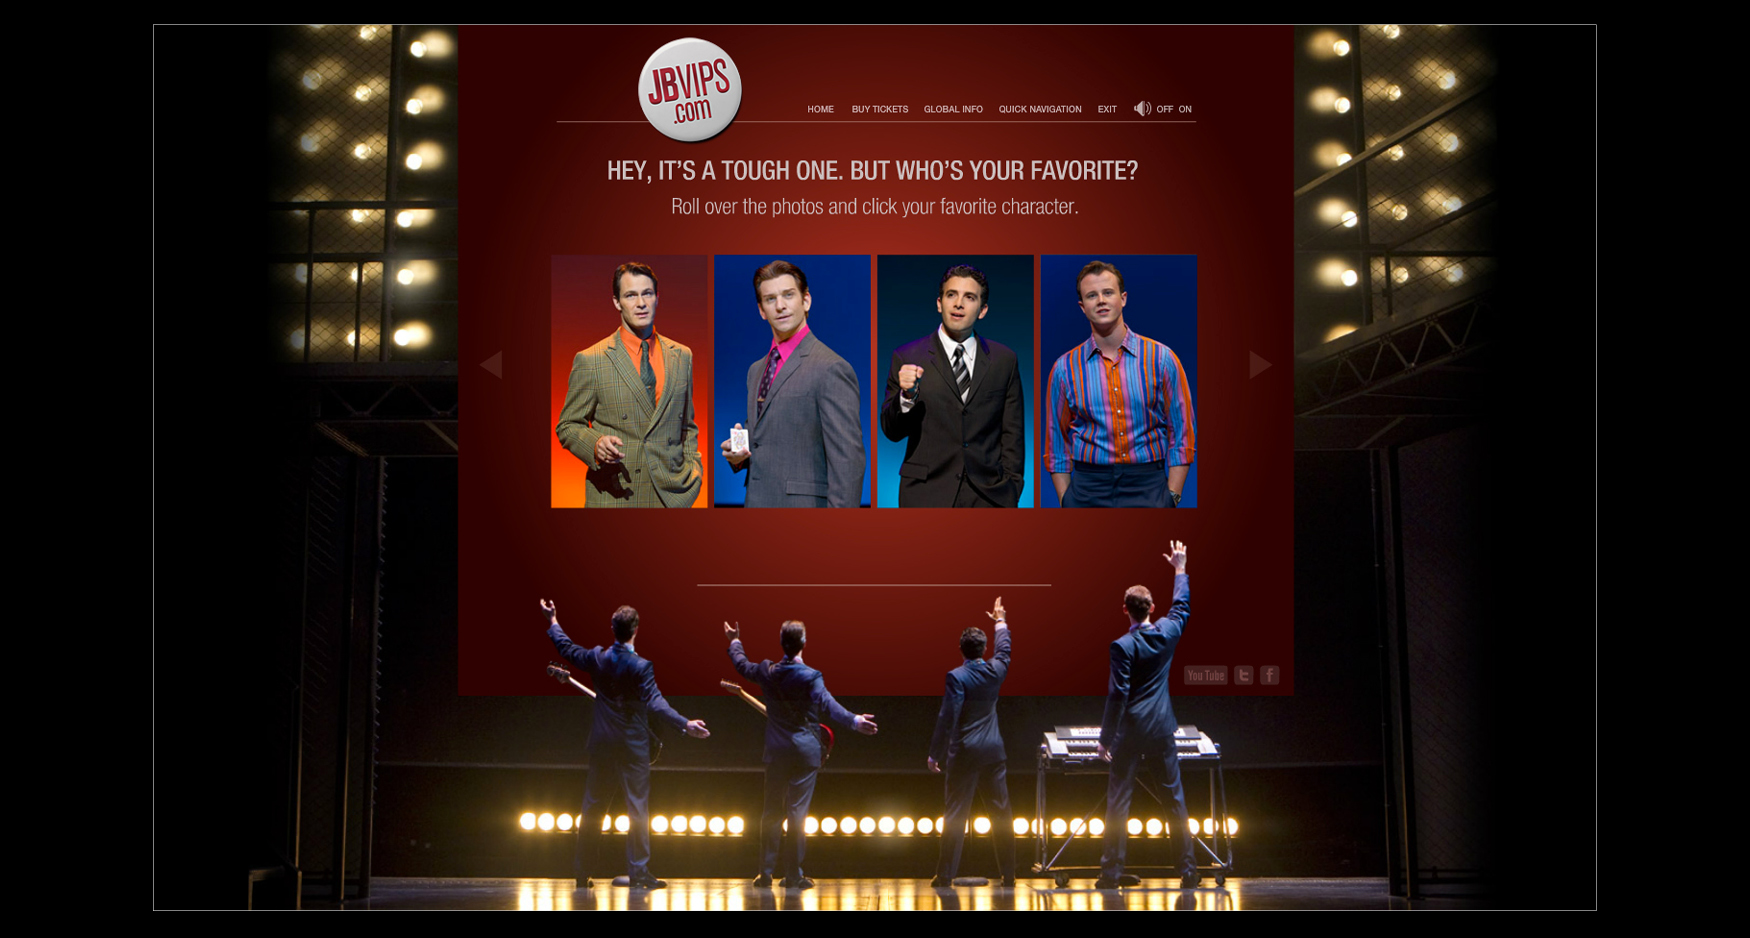 BP Large Images41 - JERSEY BOYS - FAVORITE CHARACTER PAGE